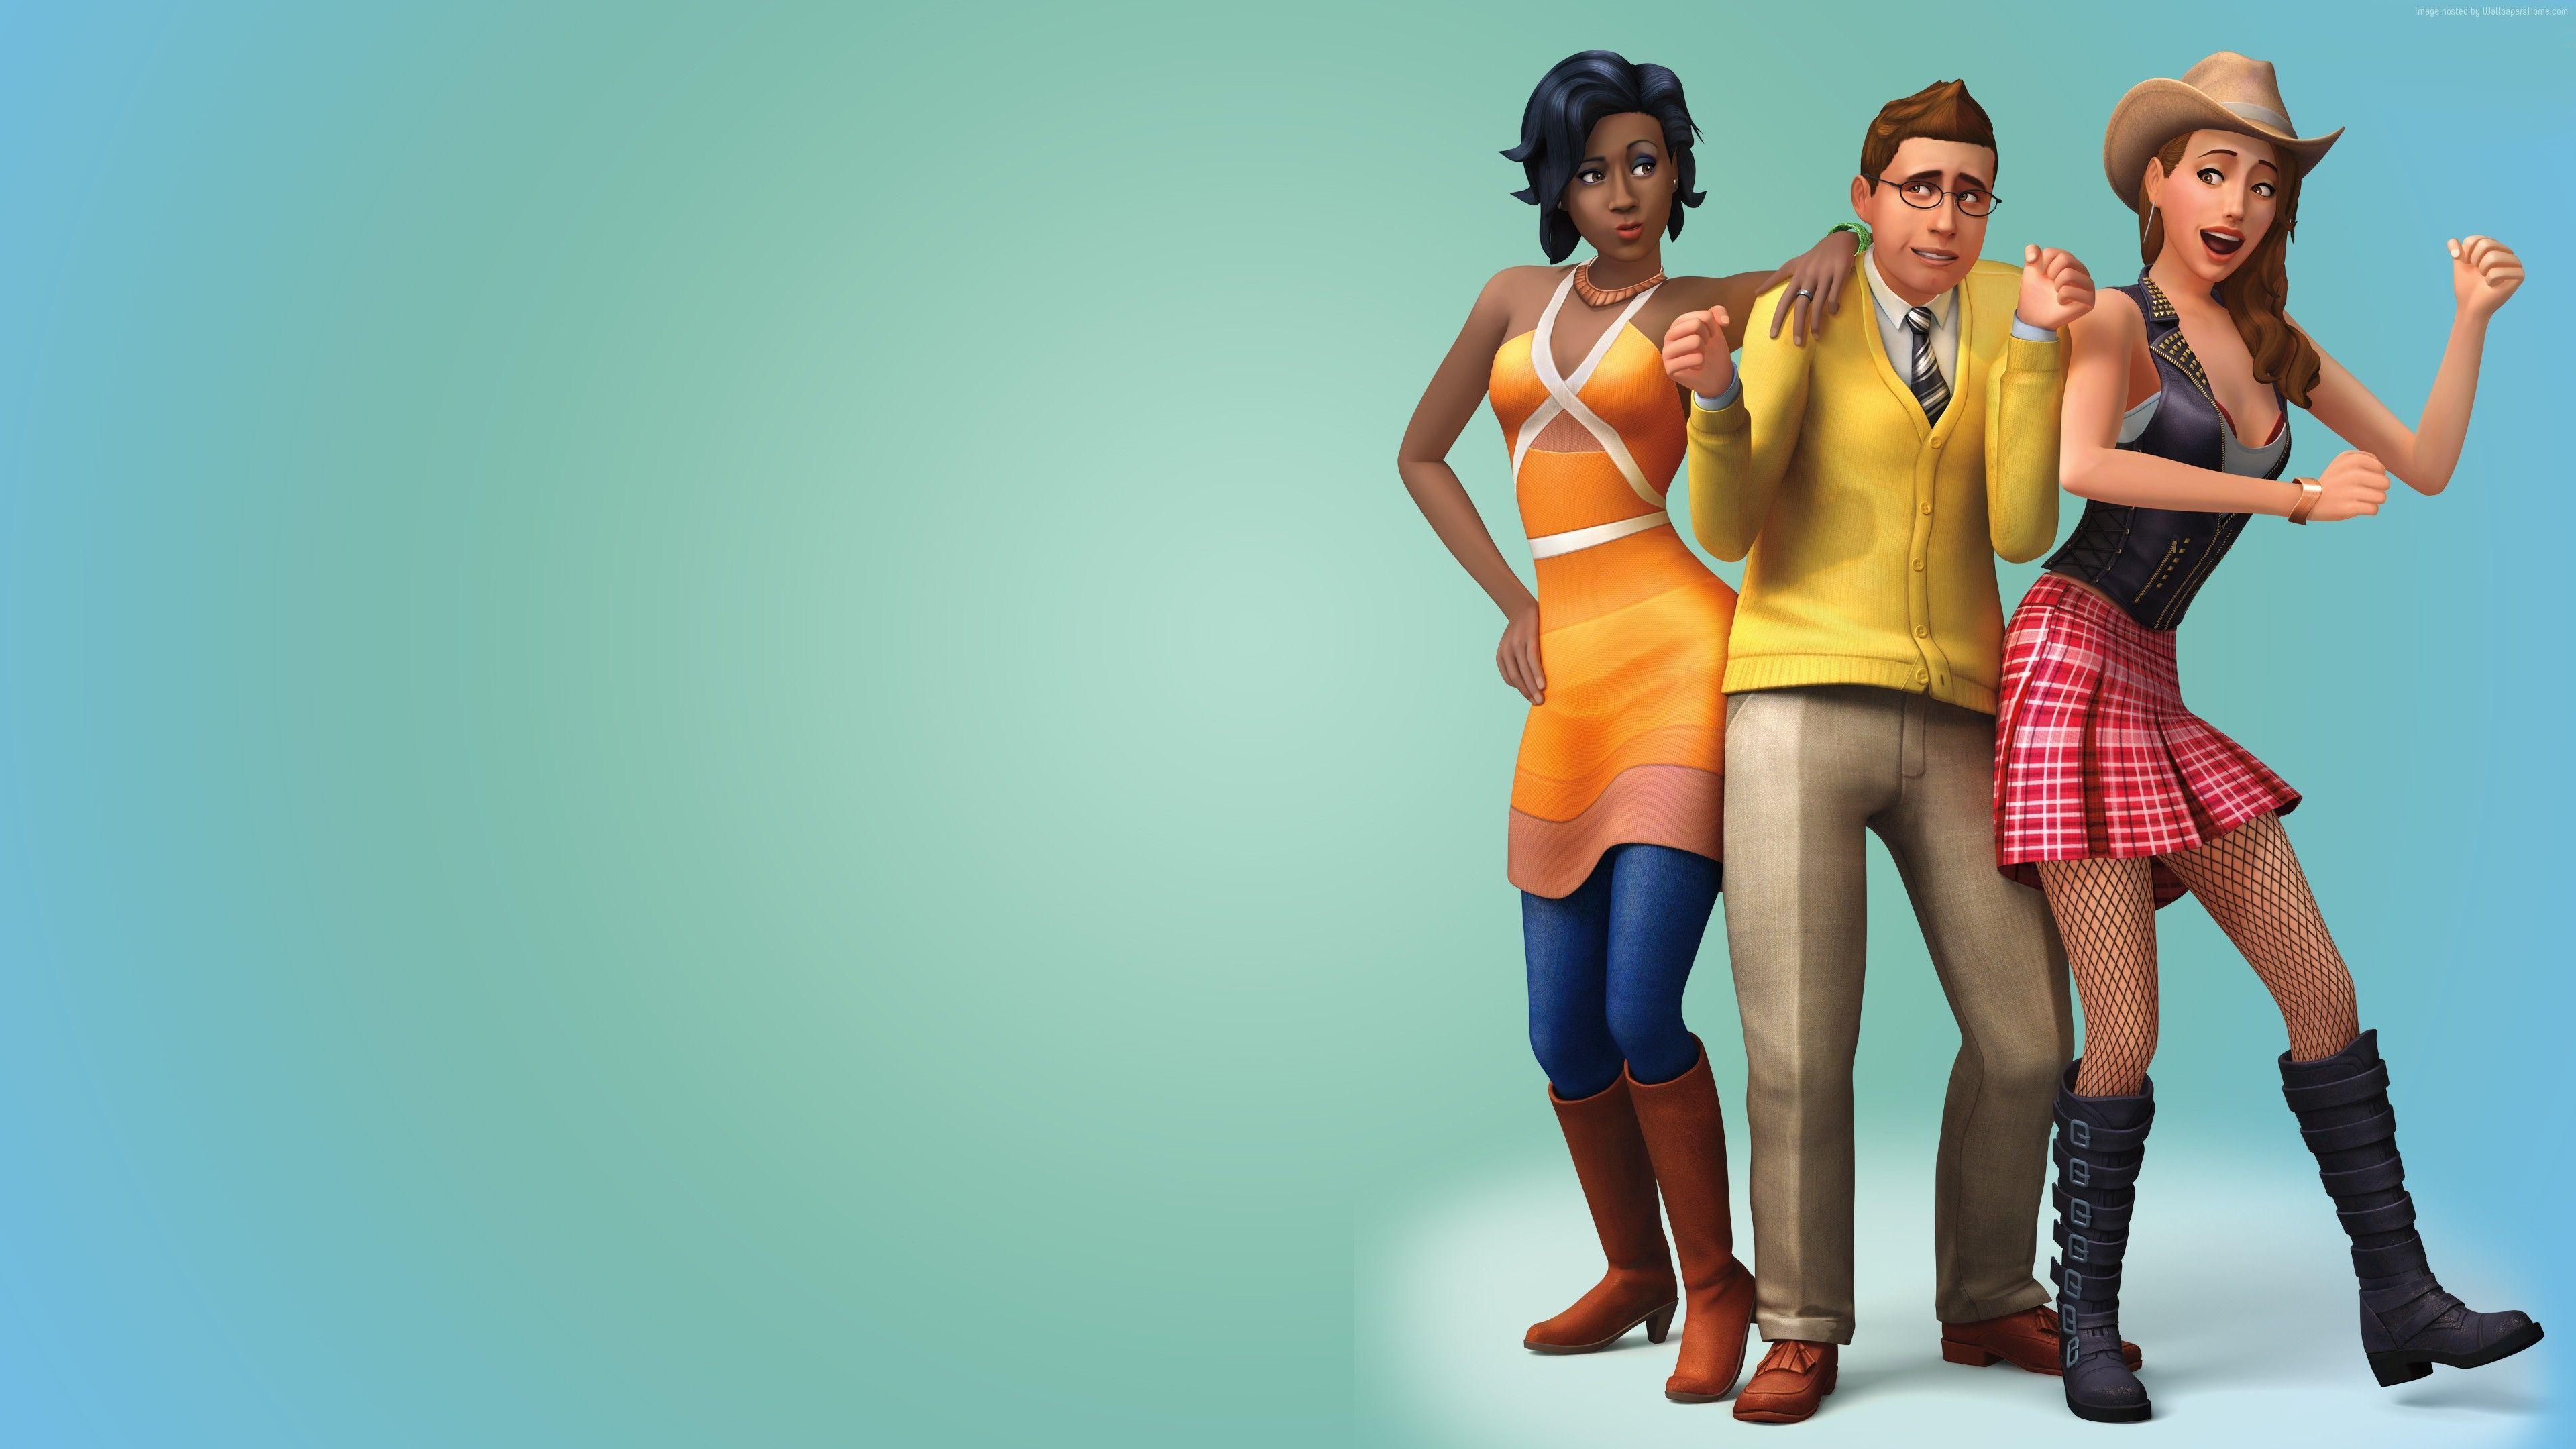 The Sims 4: Get to Work Wallpaper, Games: The Sims 4: Get to Work ...